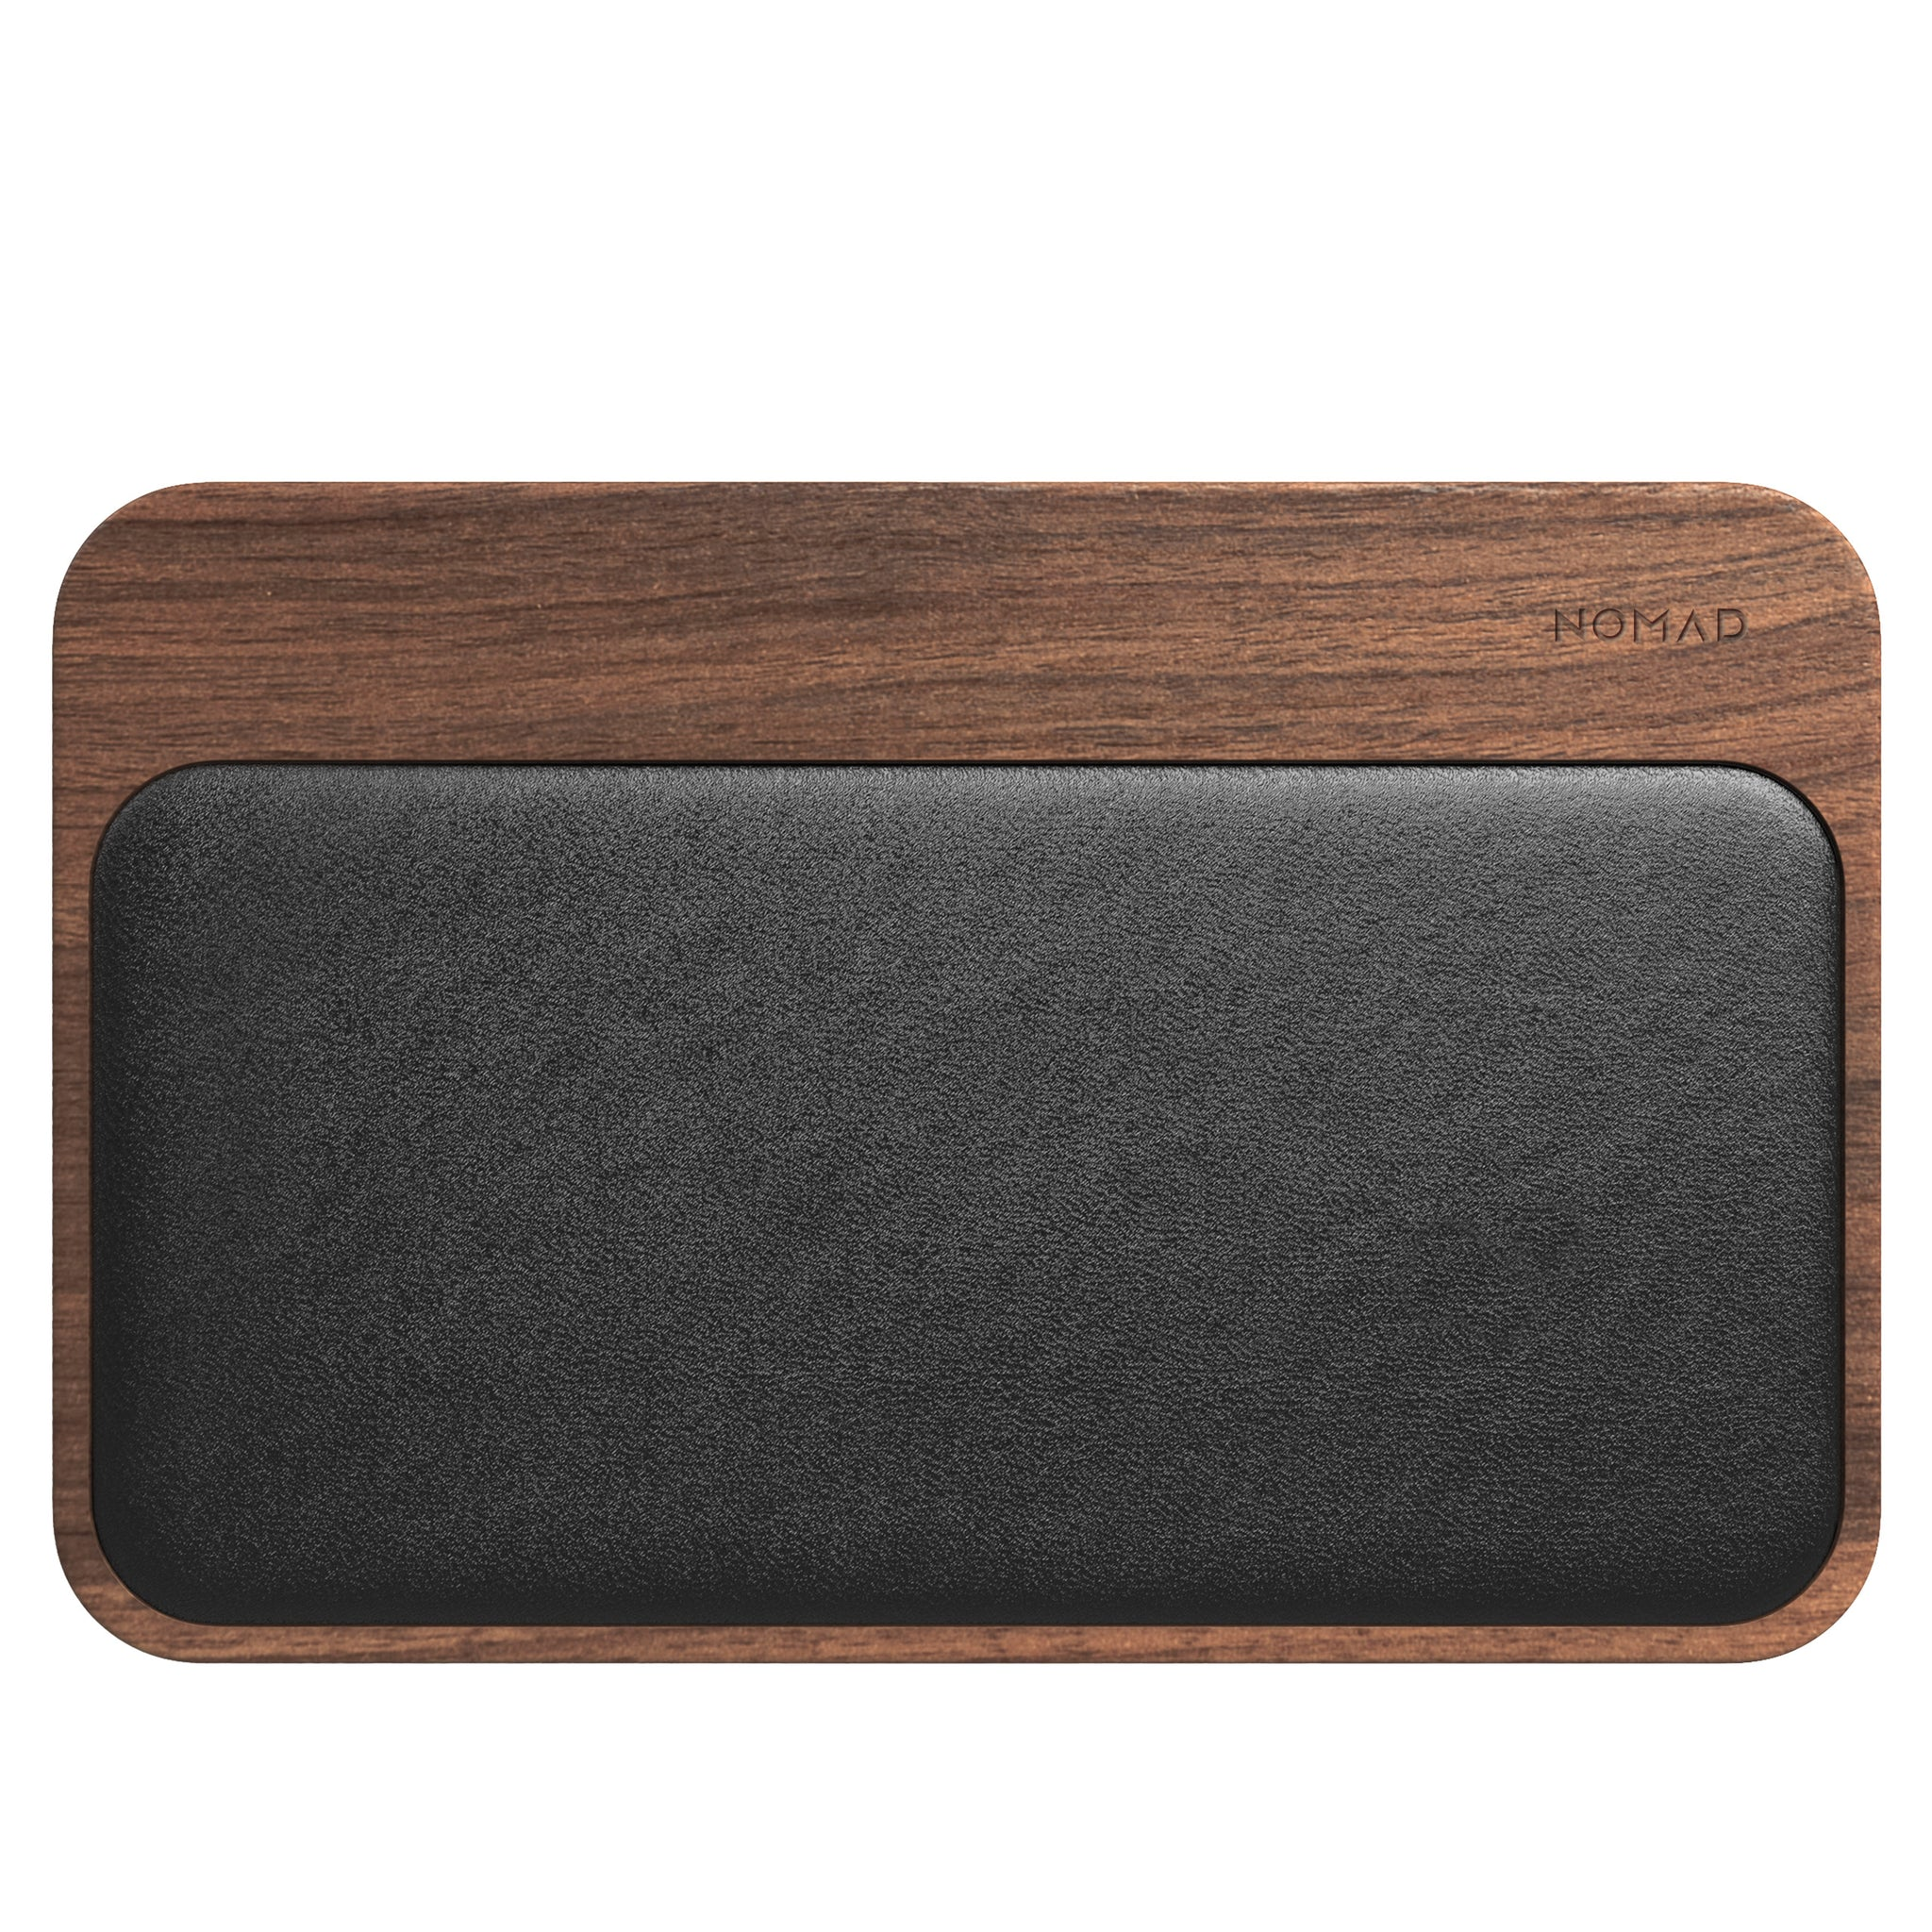 Nomad Base Station Wireless Charger - Hub Edition - Walnut